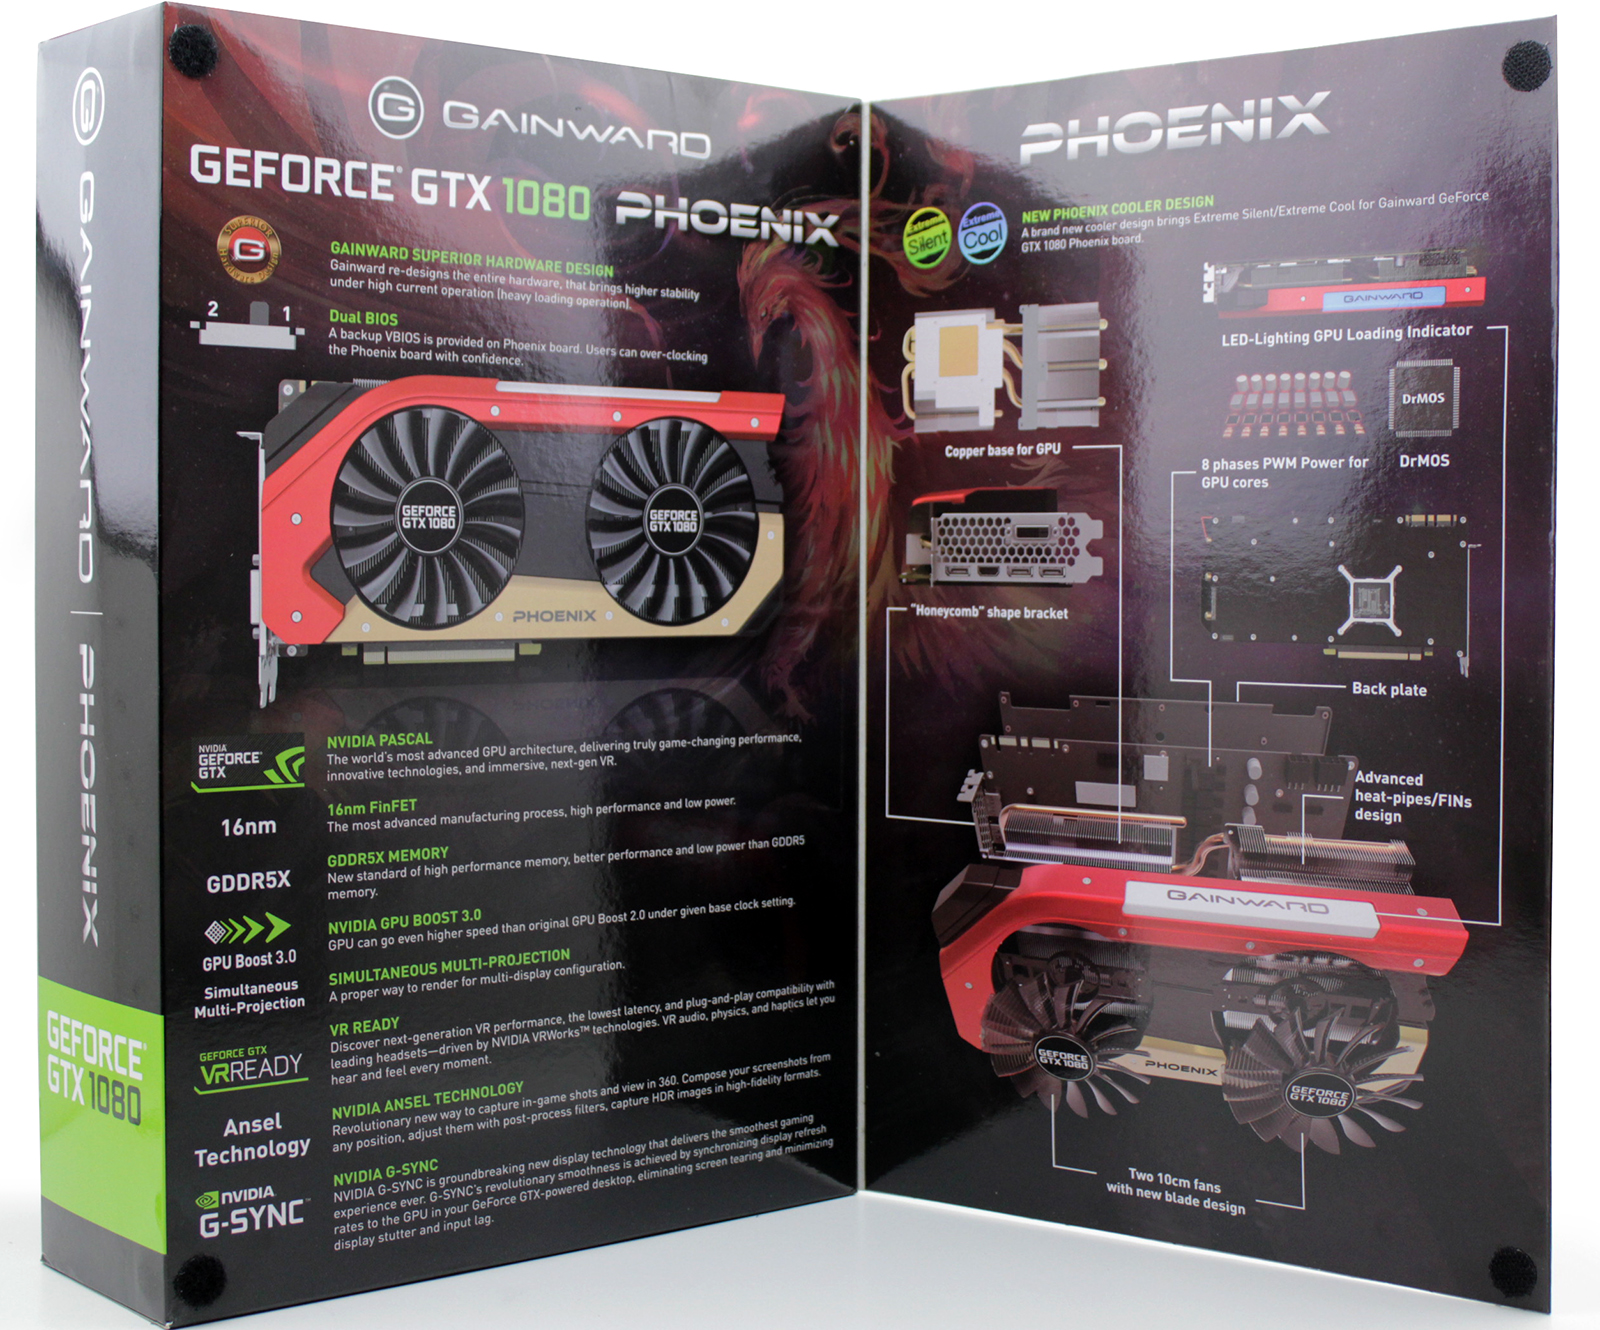 GTX 1080 Gainward GLH Box 2